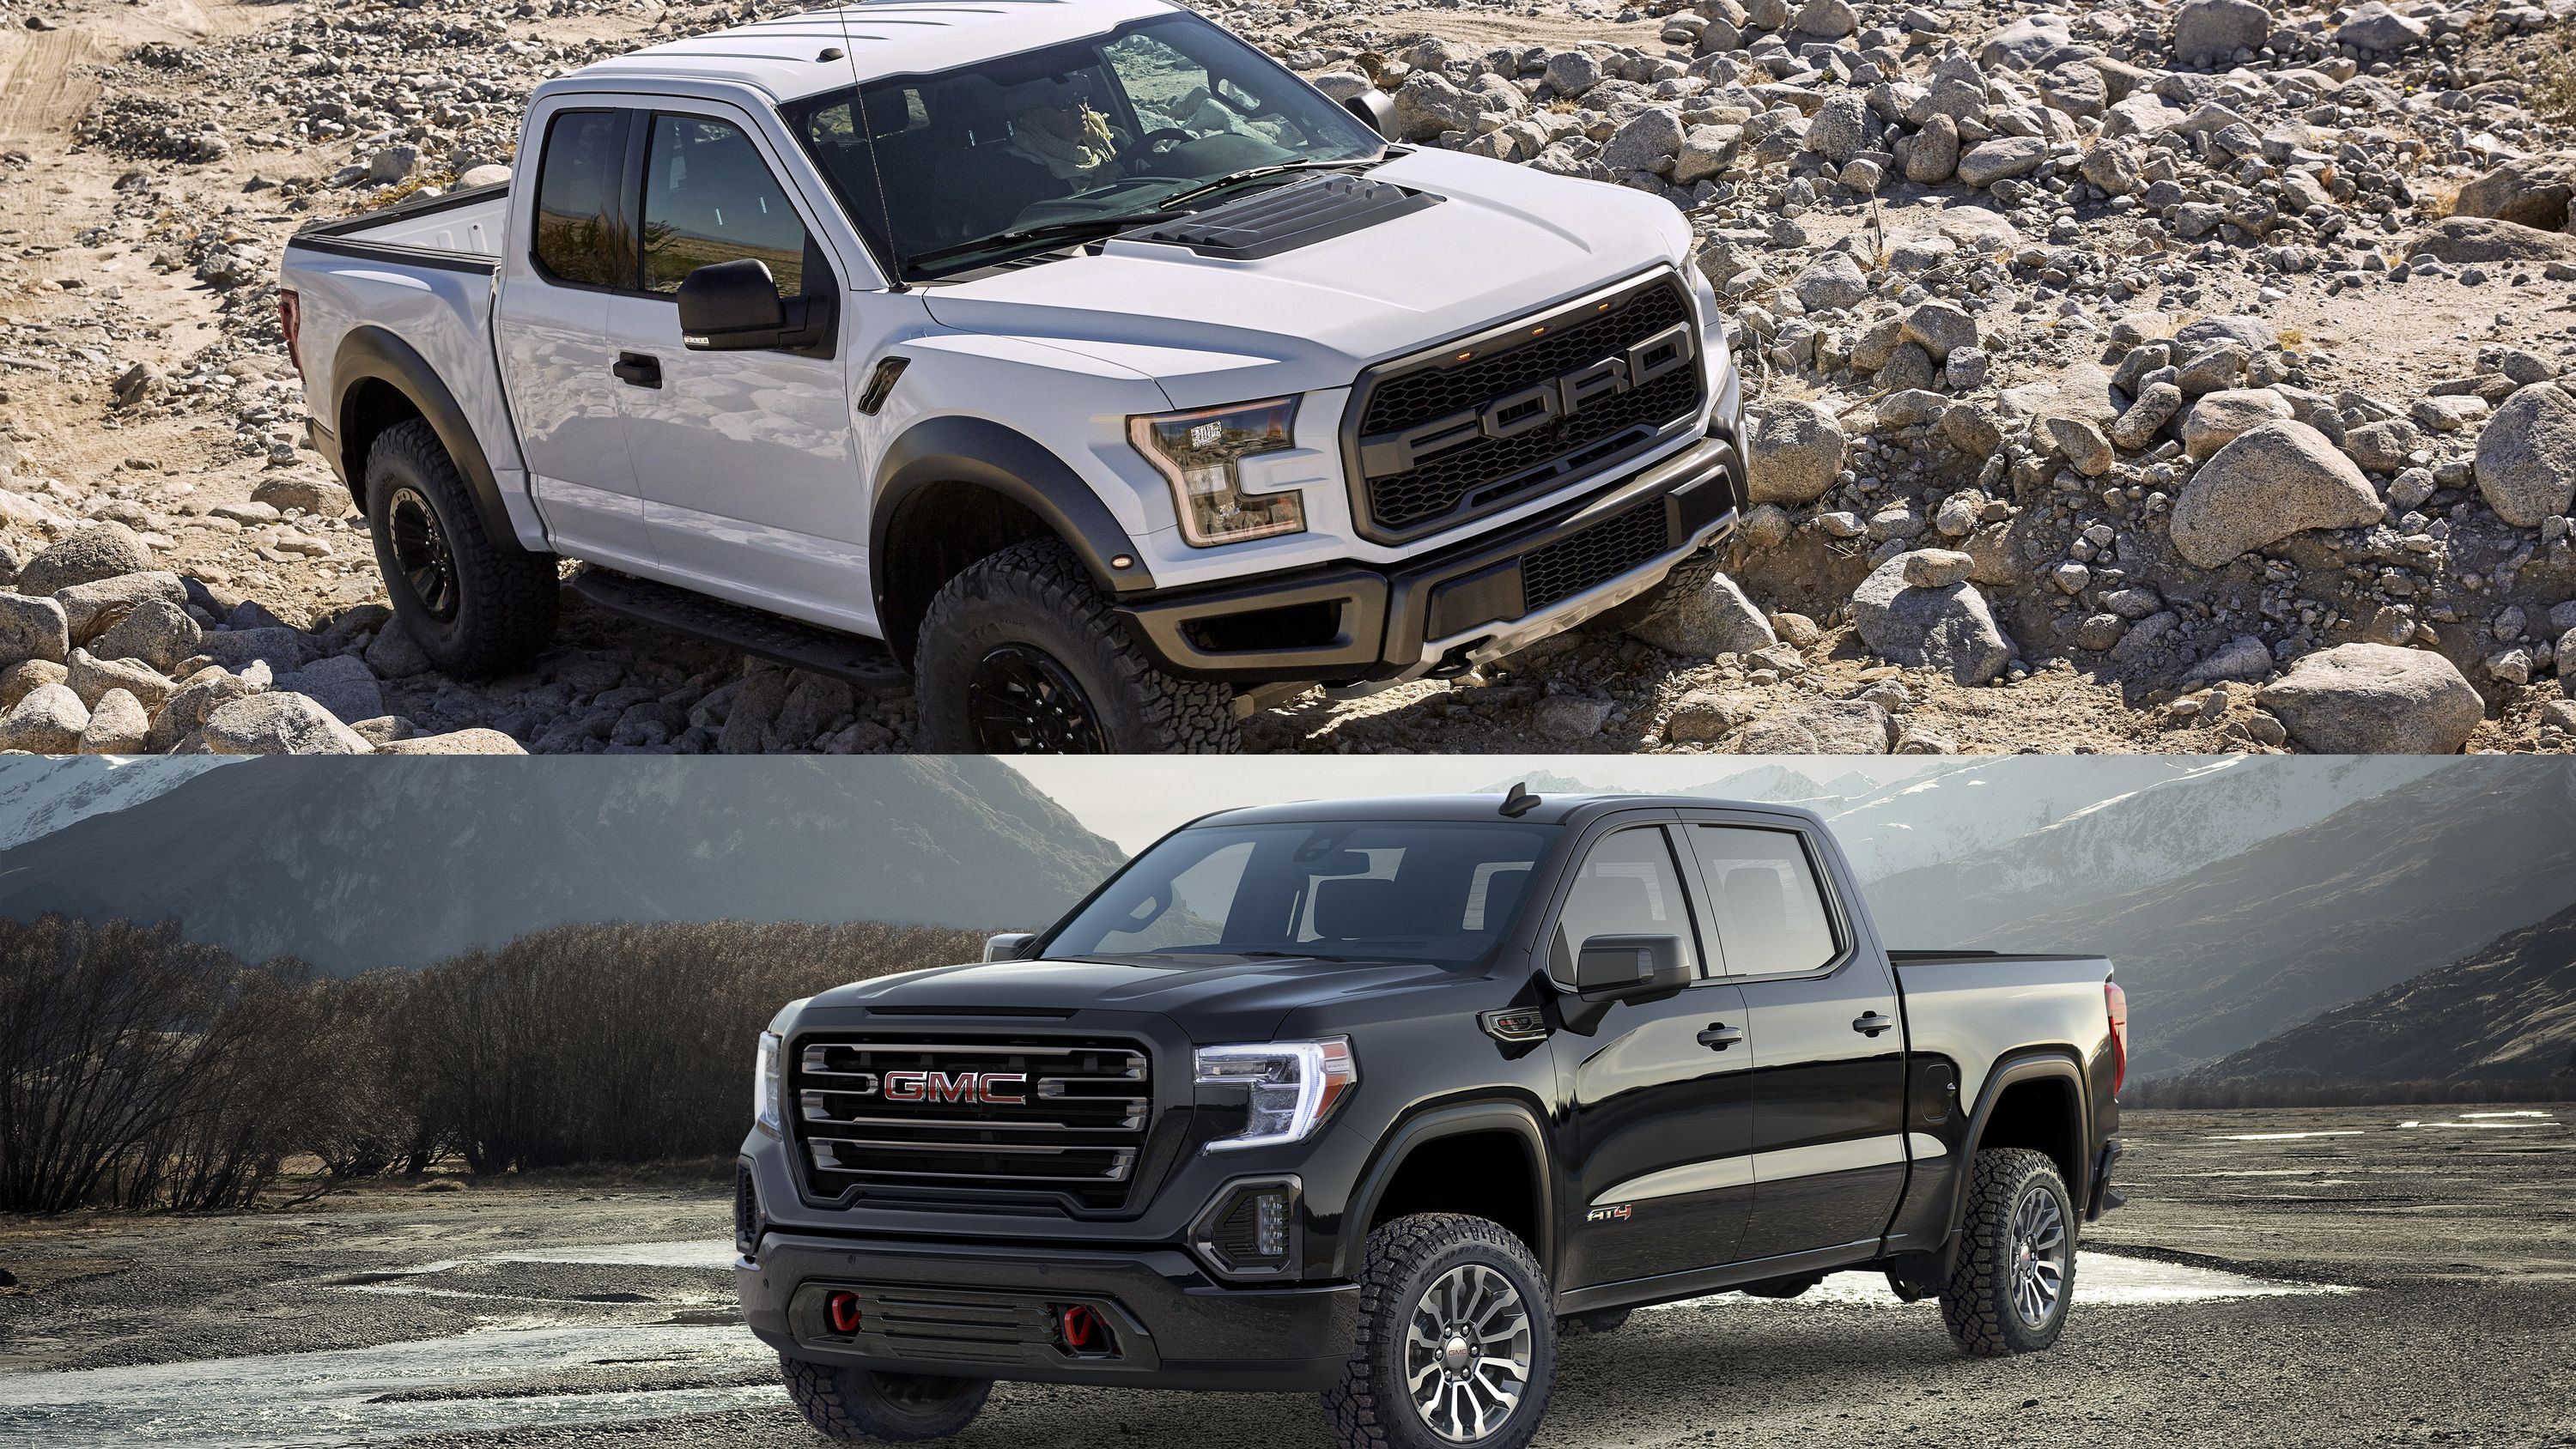 Comparison Is The Gmc Sierra At4 A Solid Alternative To The Ford